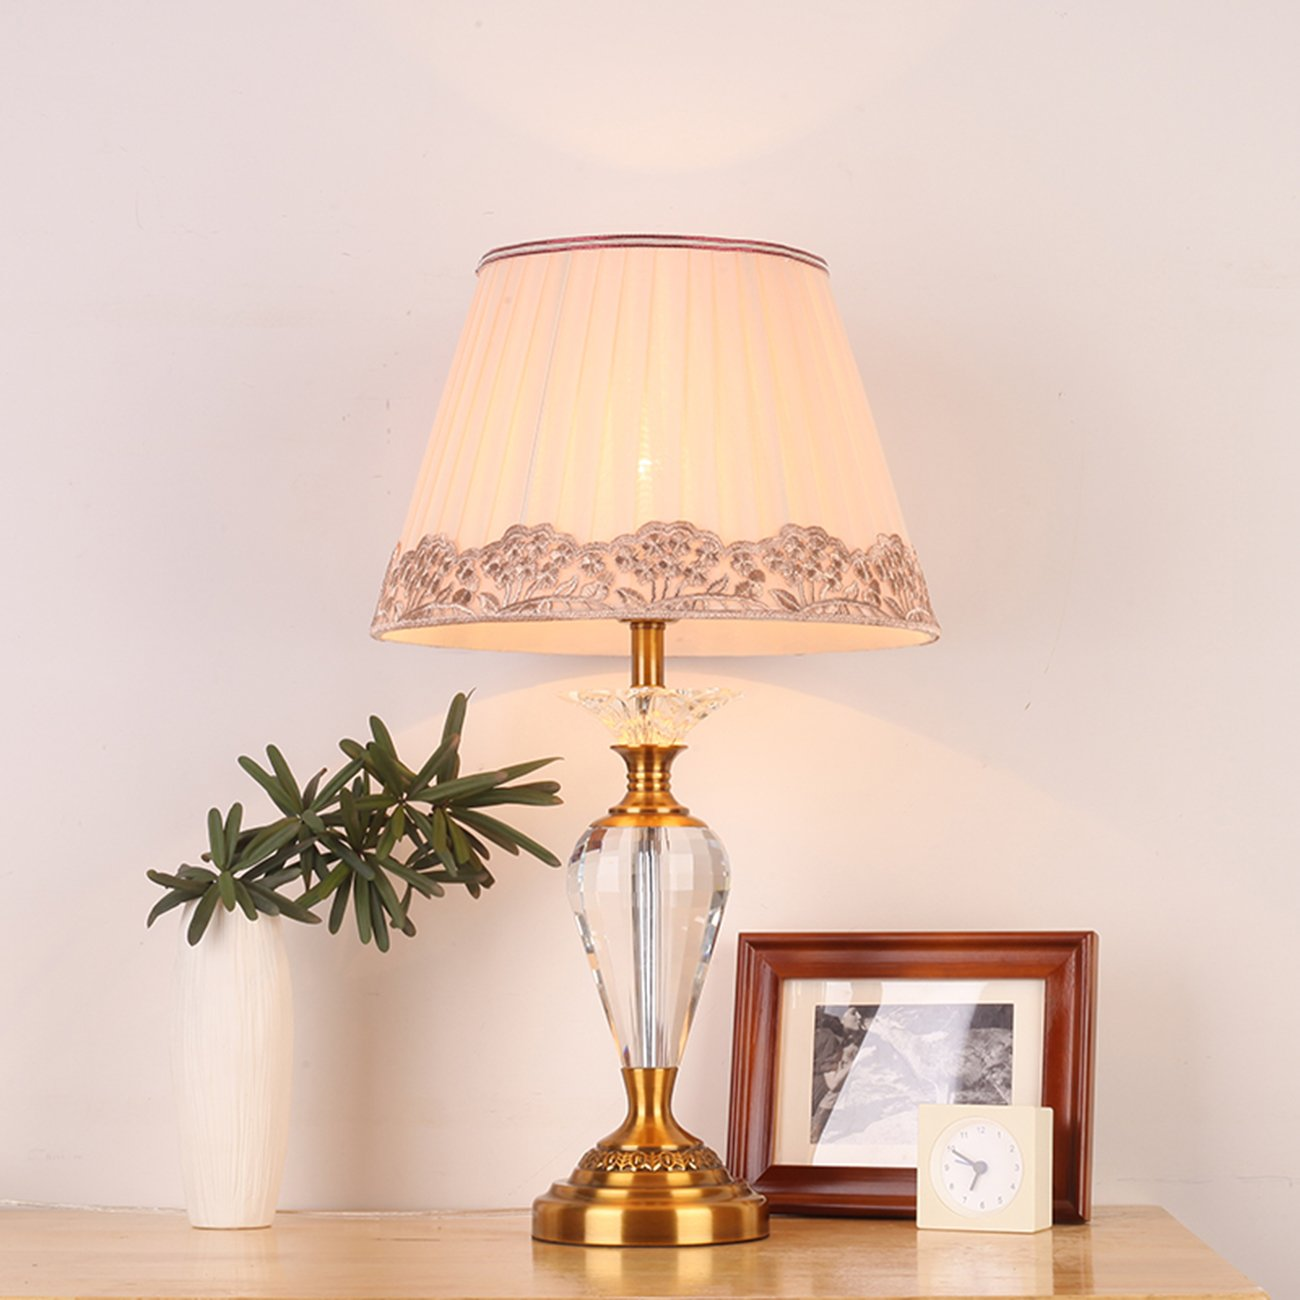 Garwarm Crystal Flower Table Lamps For Living Room Bedroom,3359CM/1323.2 Inch WH